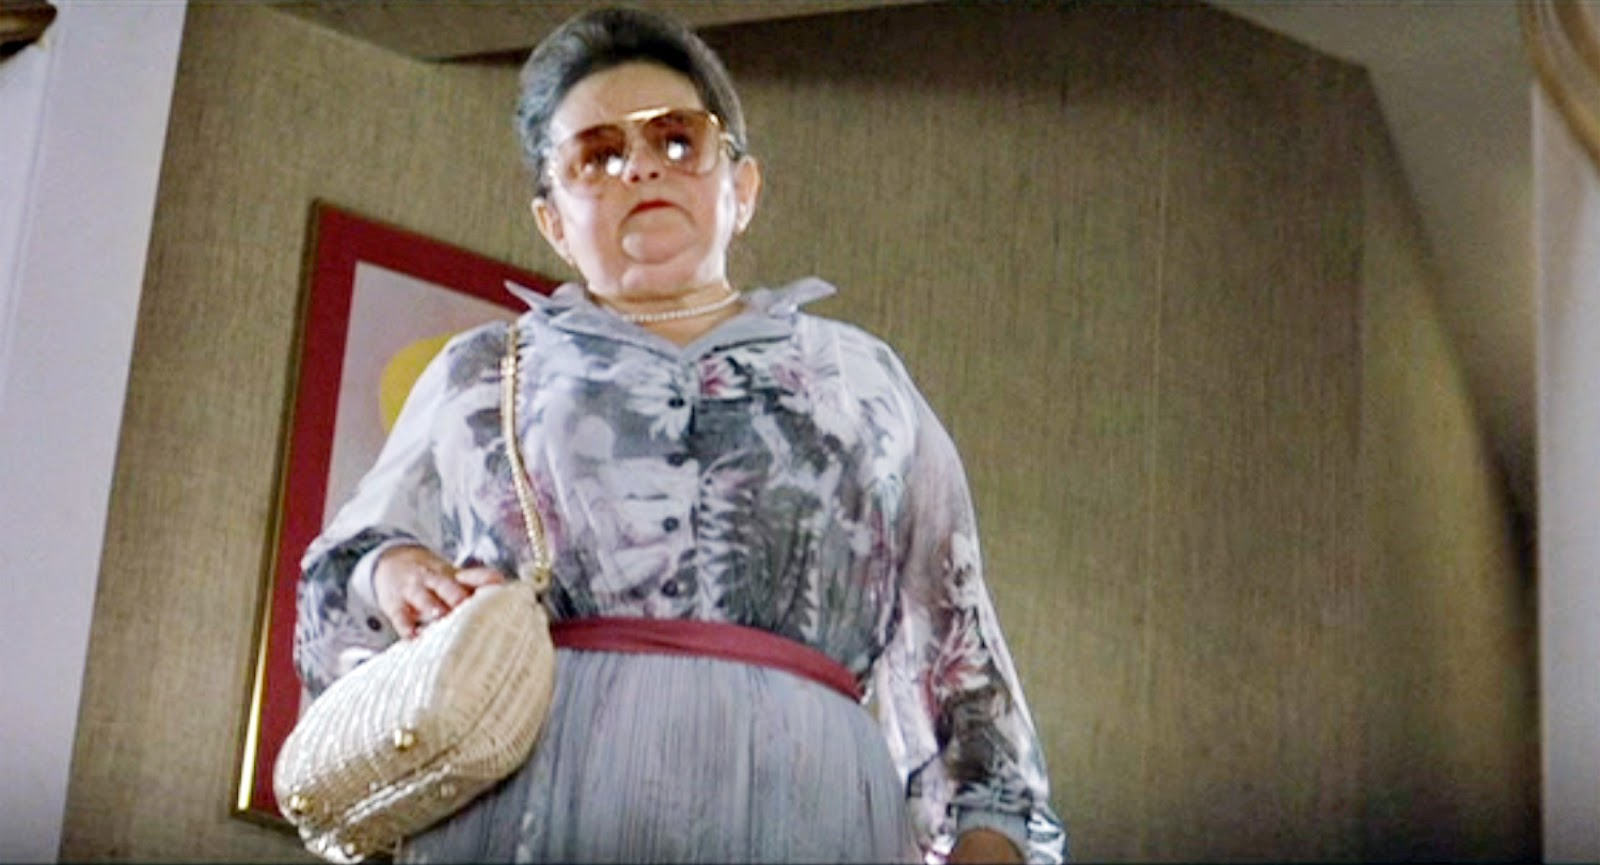 zelda rubinstein south park